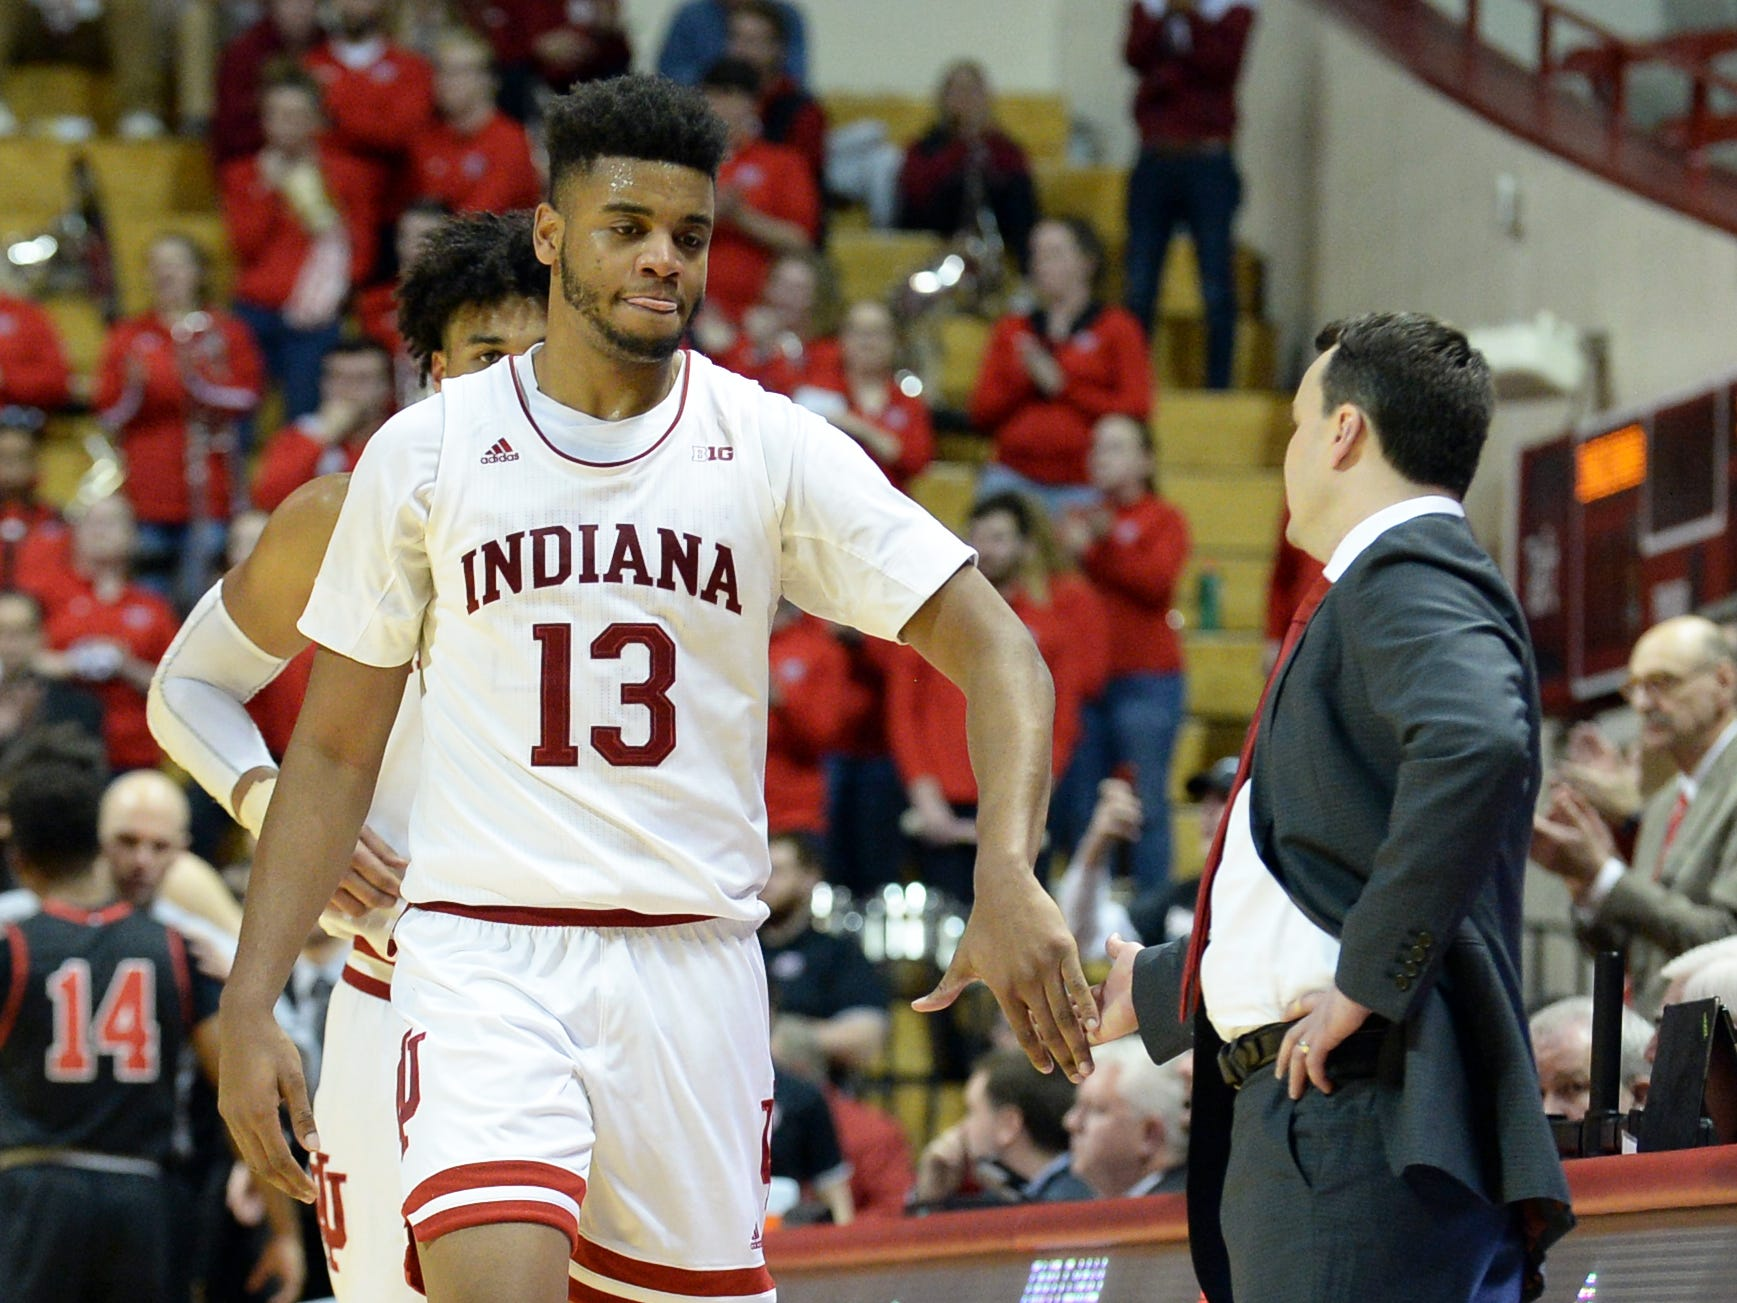 Indiana Hoosiers forward Juwan Morgan (13) receives a high five from Indiana Hoosiers head coach Archie Miller during the game against St. Francis (Pa.) at Simon Skjodt Assembly Hall in Bloomington Ind., on Tuesday, March 19, 2019.